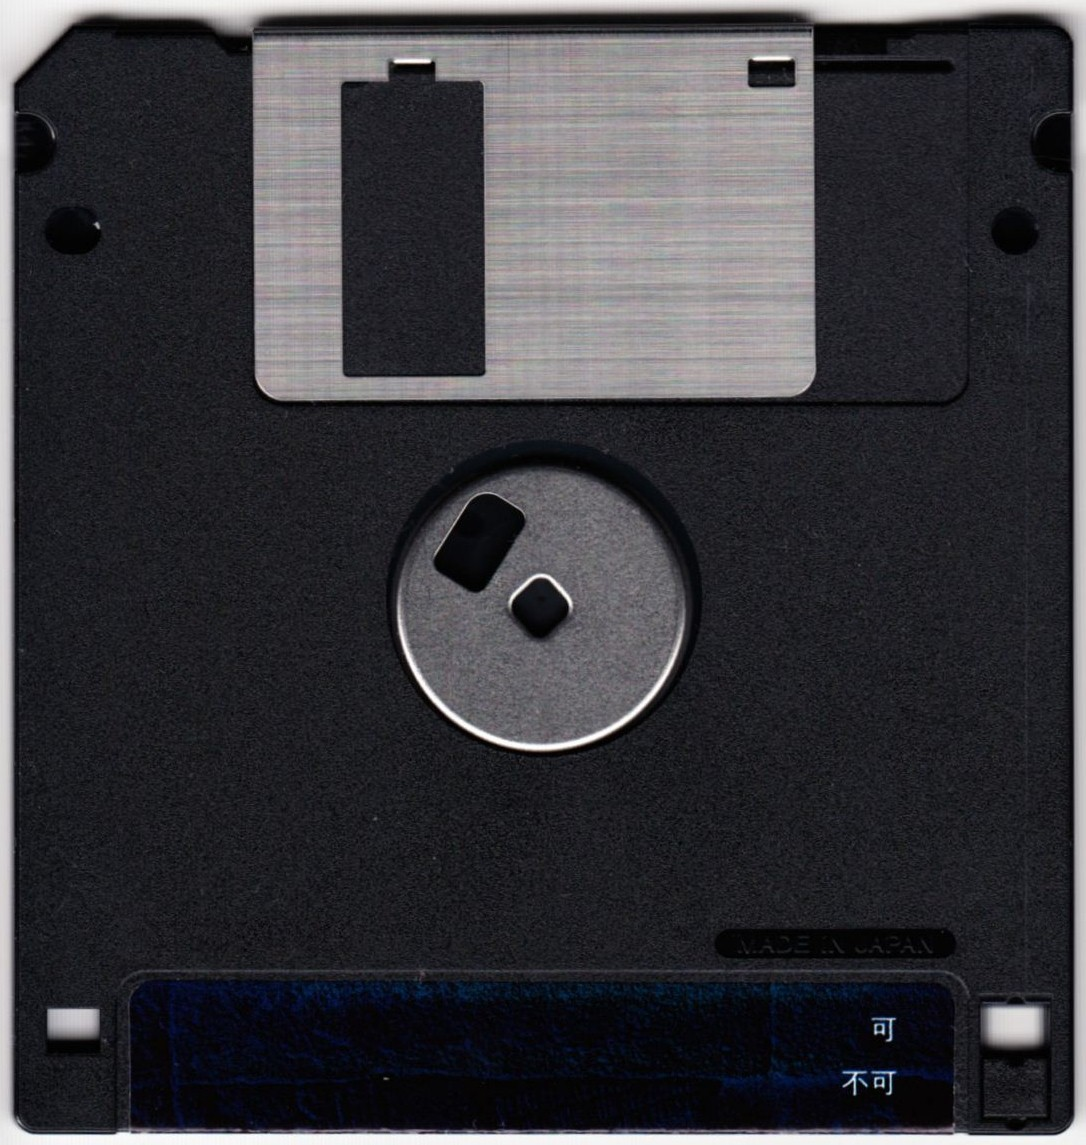 Game - Dungeon Master II - JP - PC-9801 - 3.5-inch - Disk C Data Disk - Back - Scan